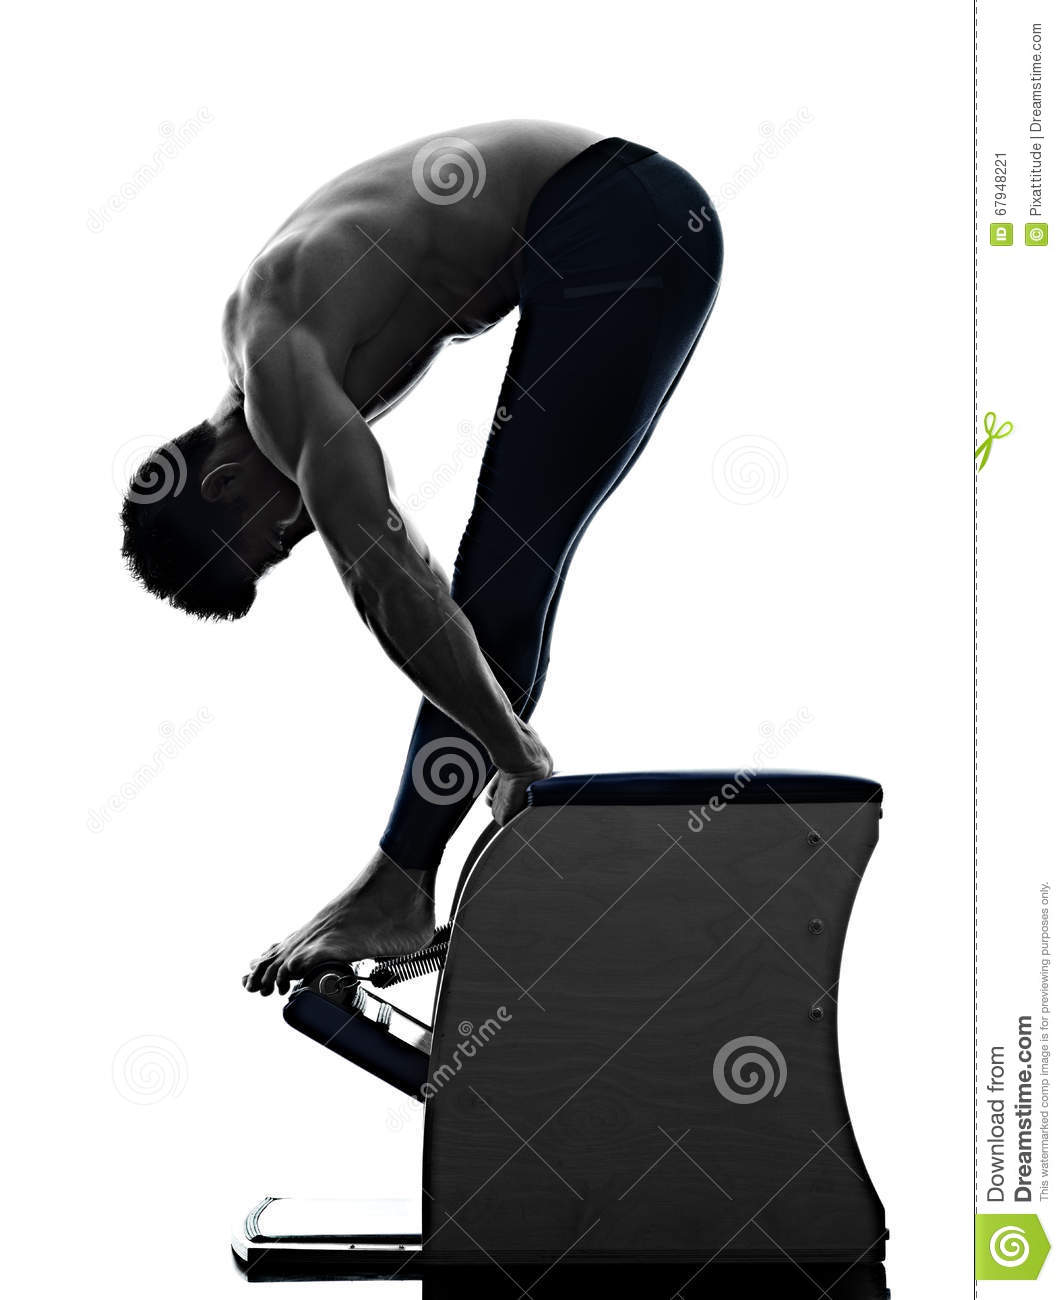 Woman Pilates Chair Exercises Fitness Stock Photo: Man Pilates Chair Exercises Fitness Isolated Stock Image